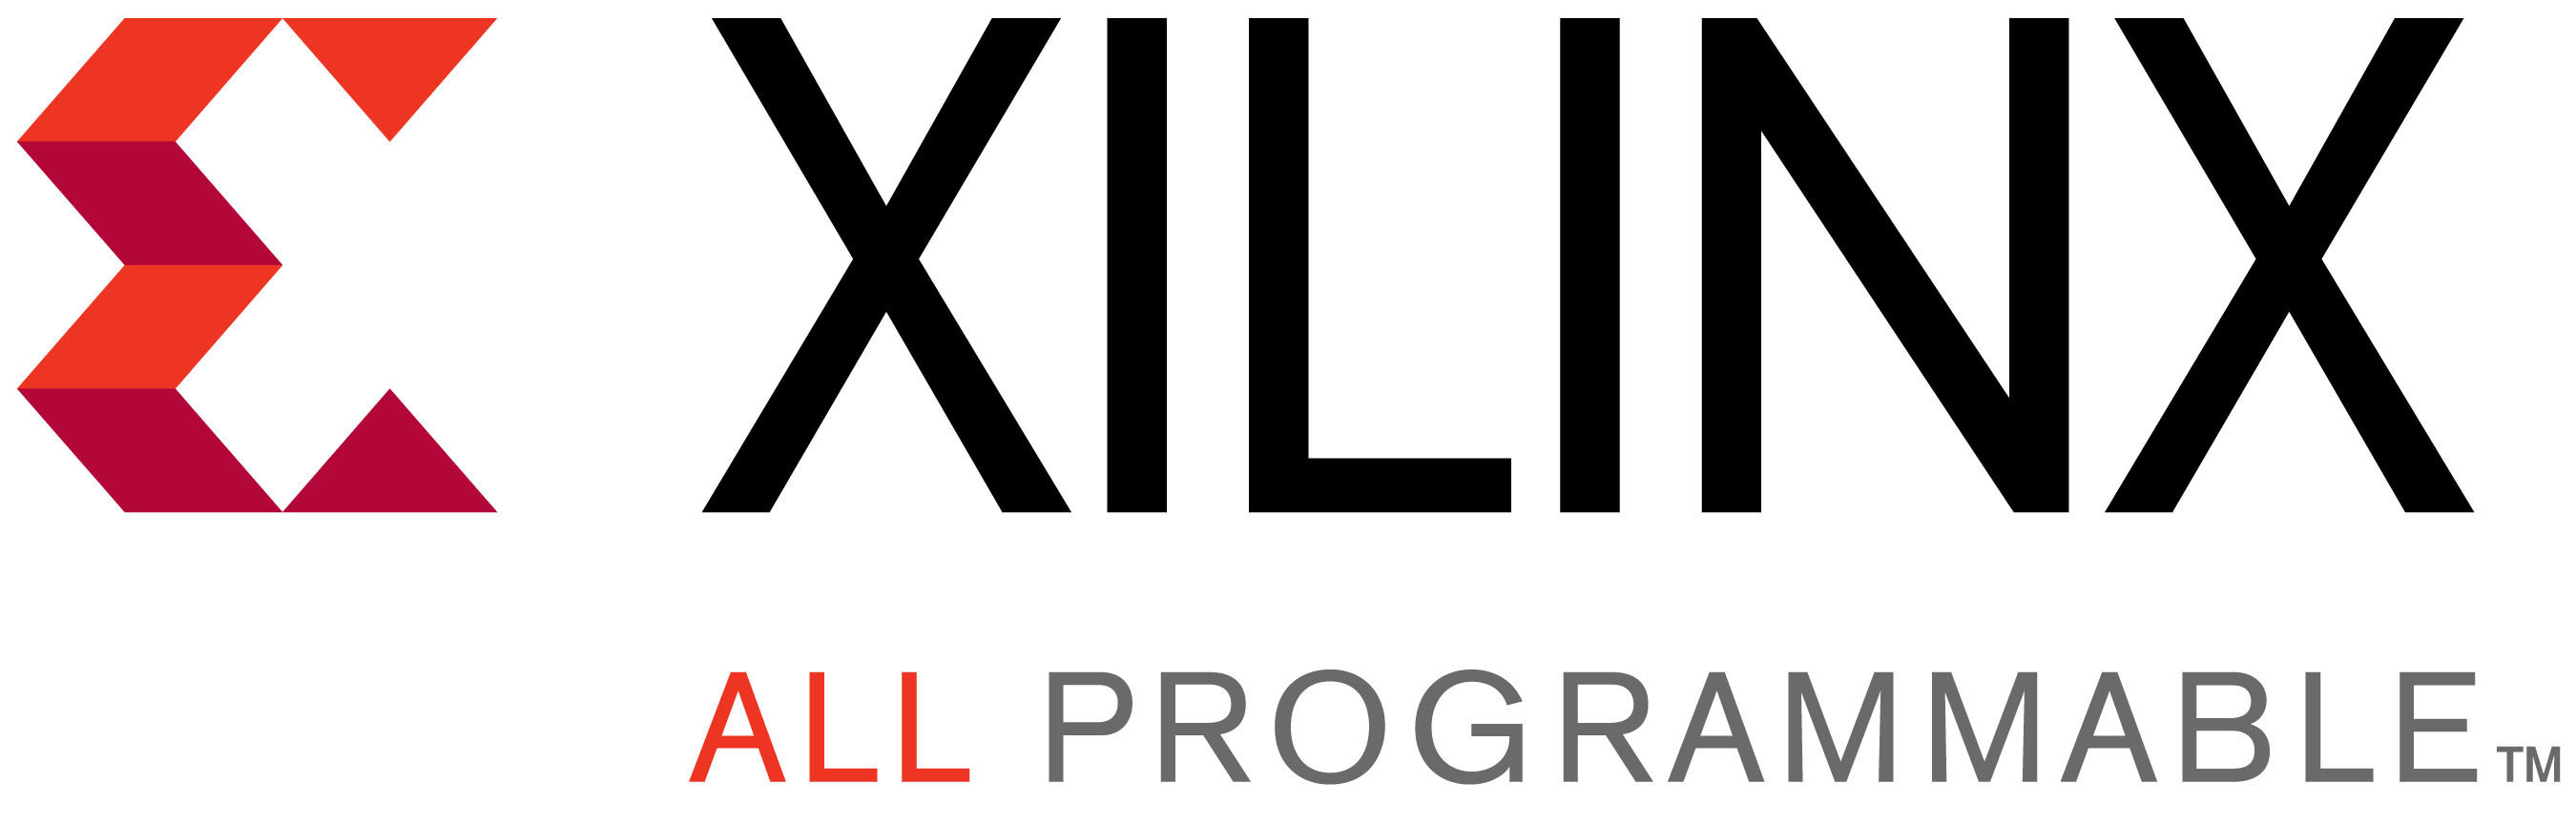 Xilinx Showcases All Programmable Solutions for Data Center